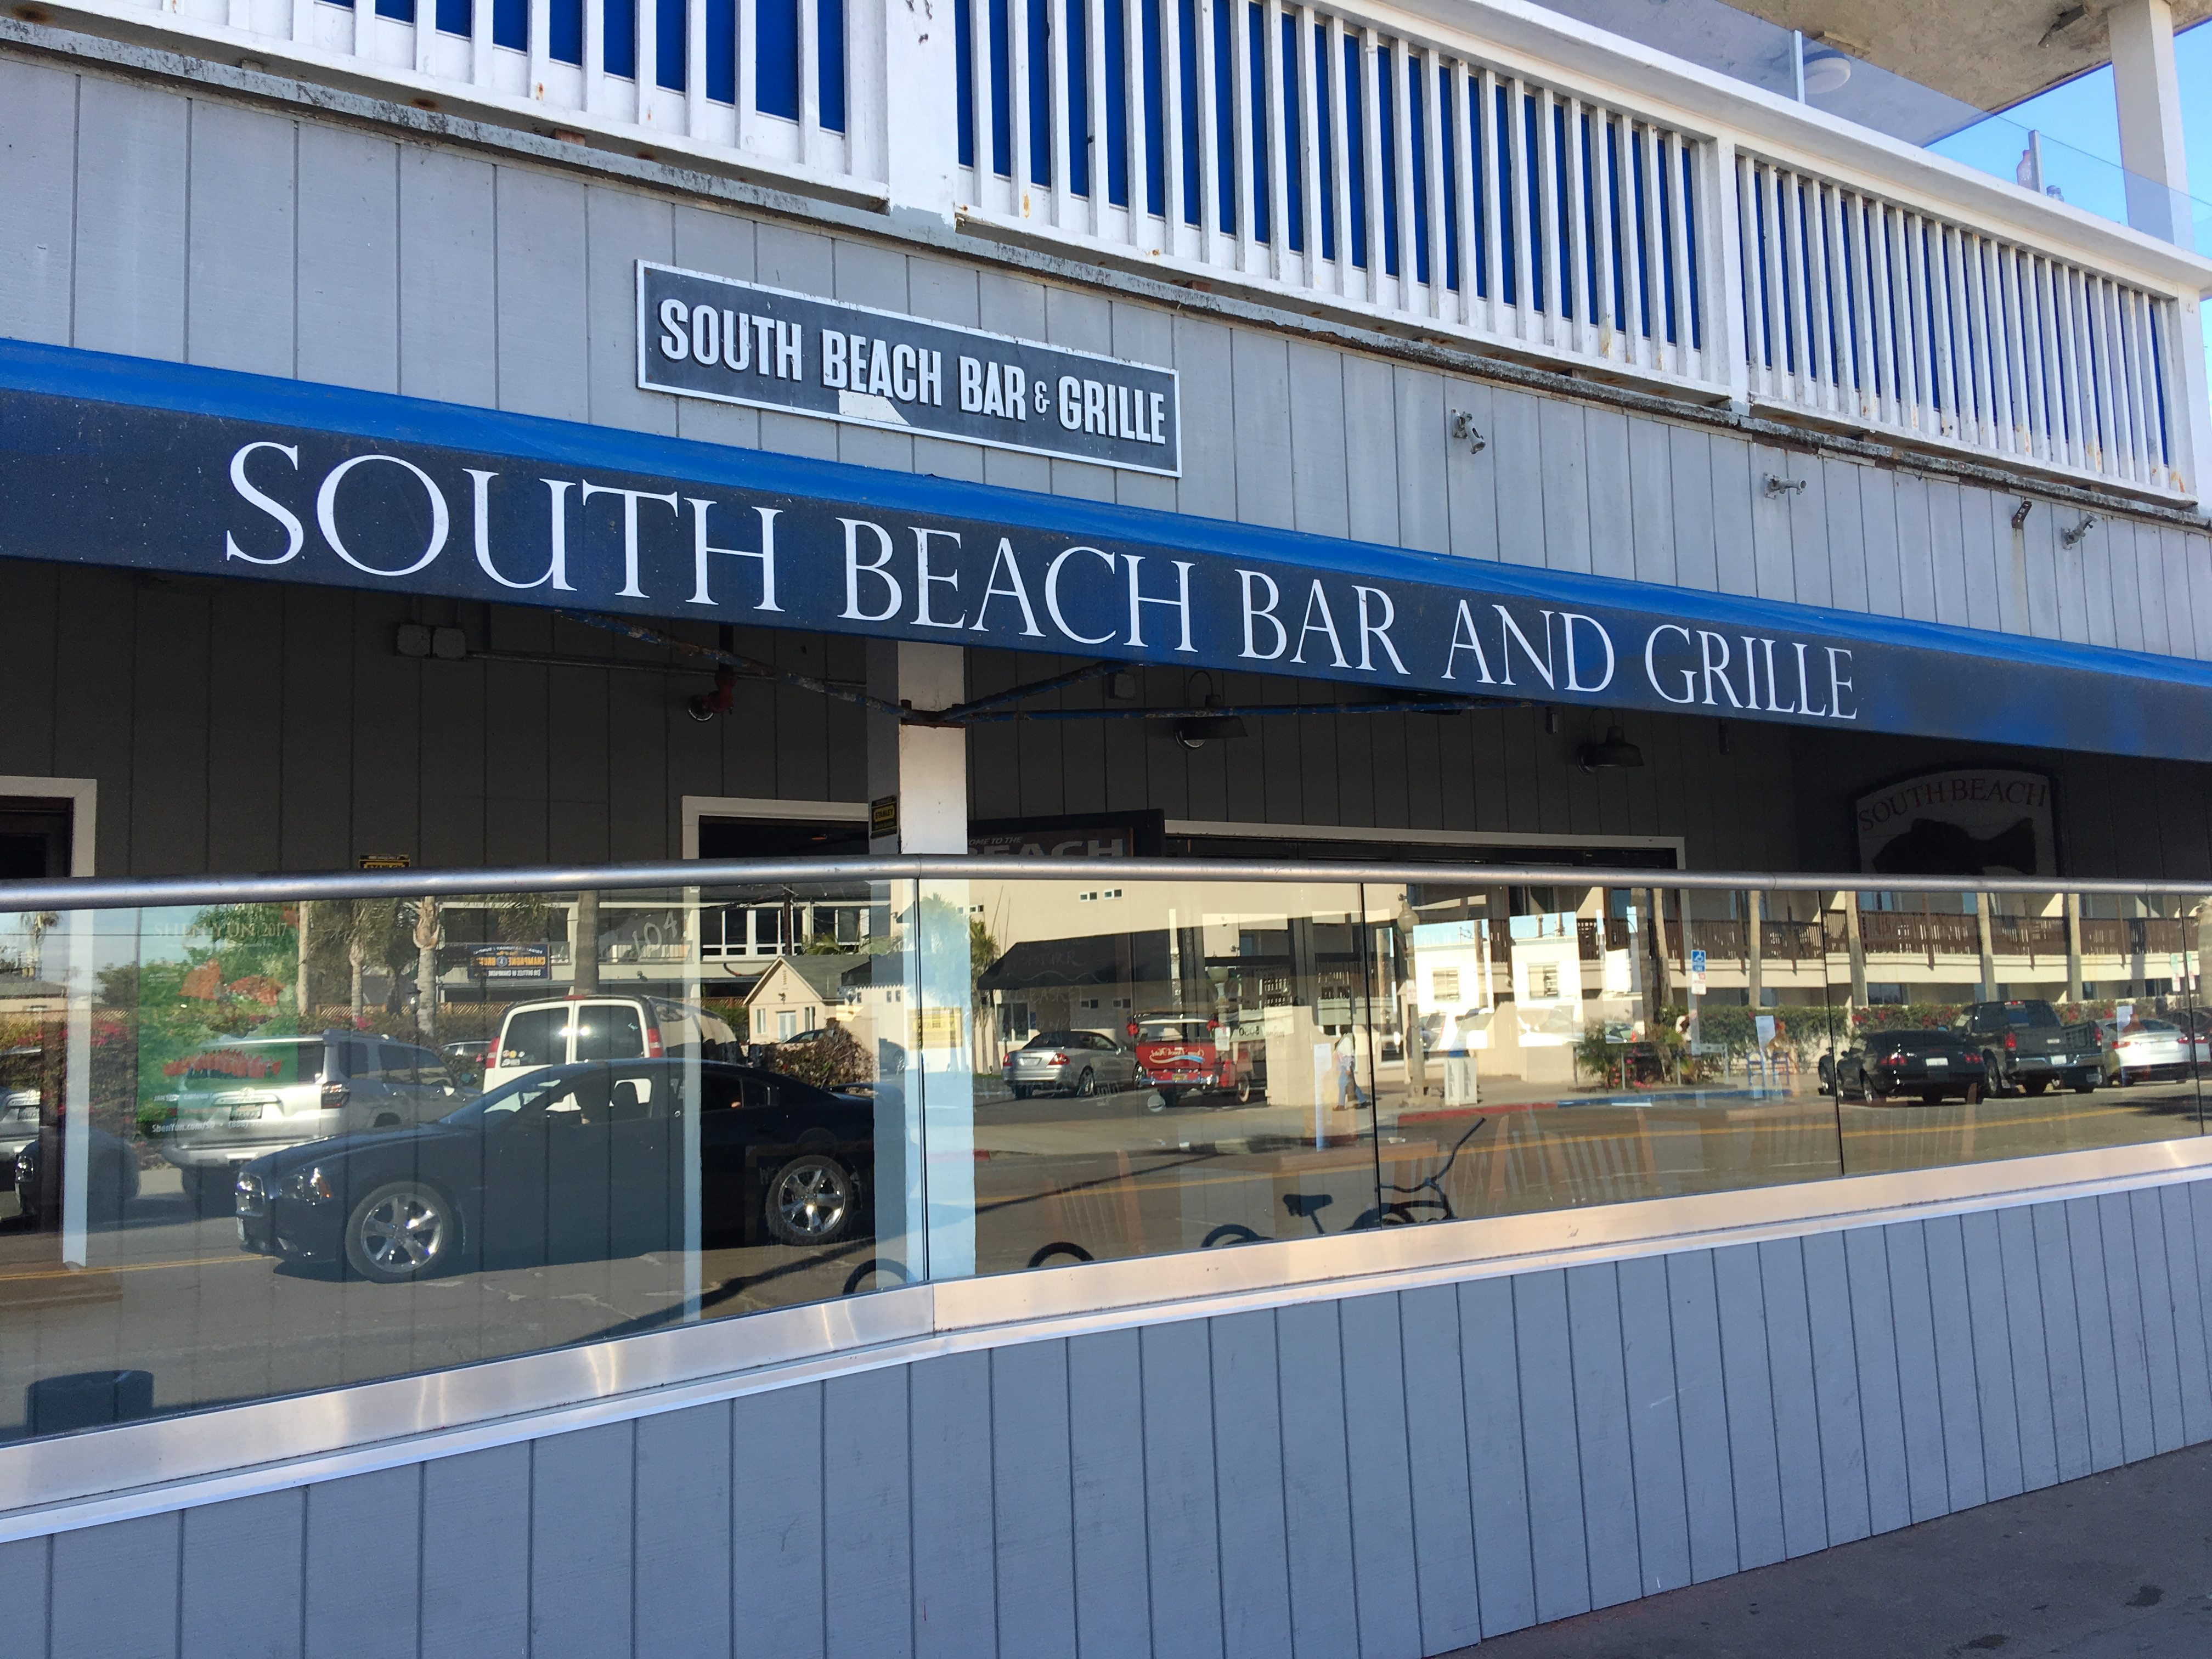 The New Children's Museum (NCM) San Diego, South Beach Bar and Grille in Ocean Beach - Dot Com Food